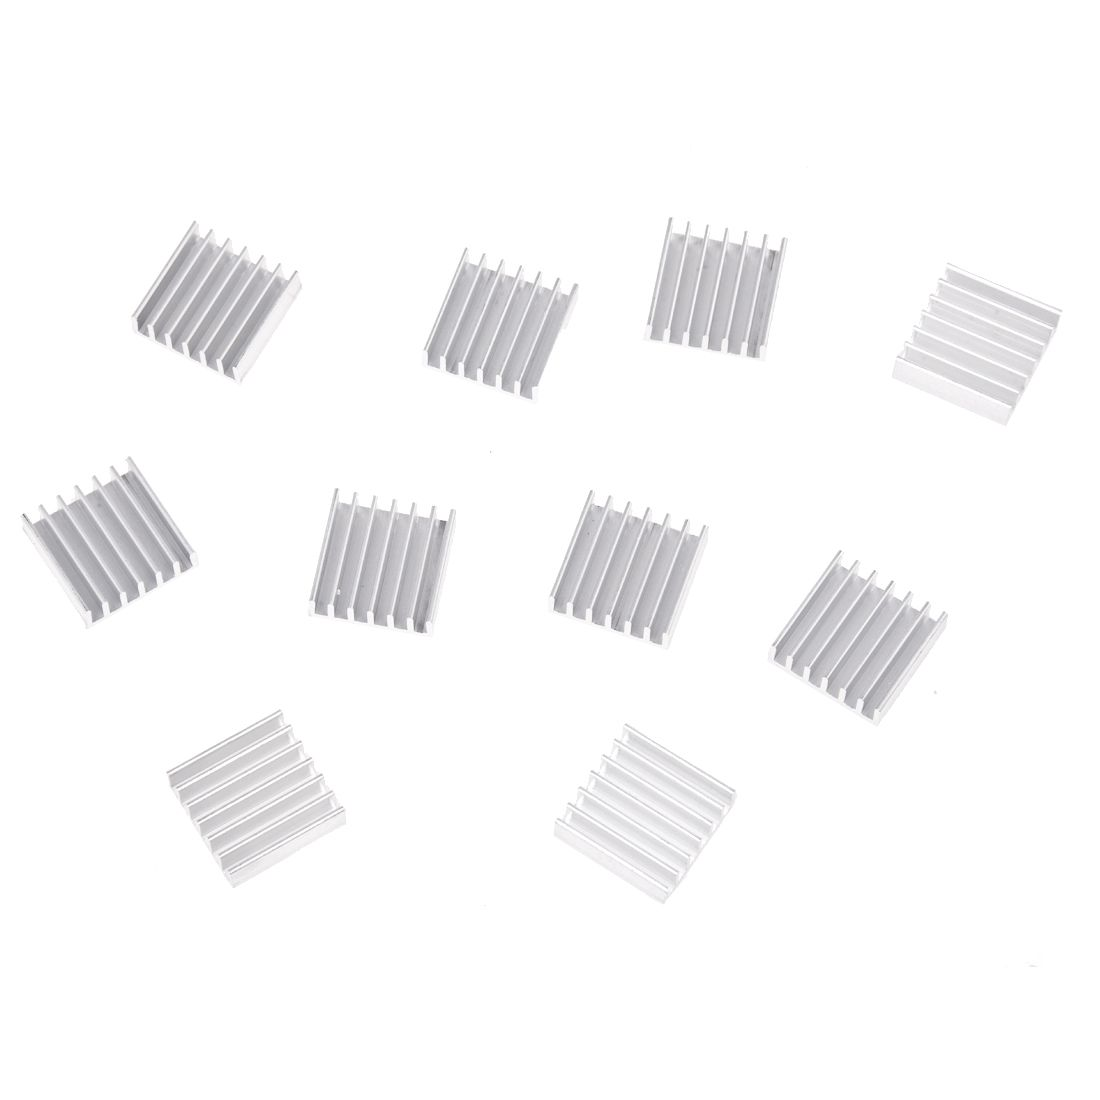 Cheap for all in-house products heatsink 10*10 in FULL HOME